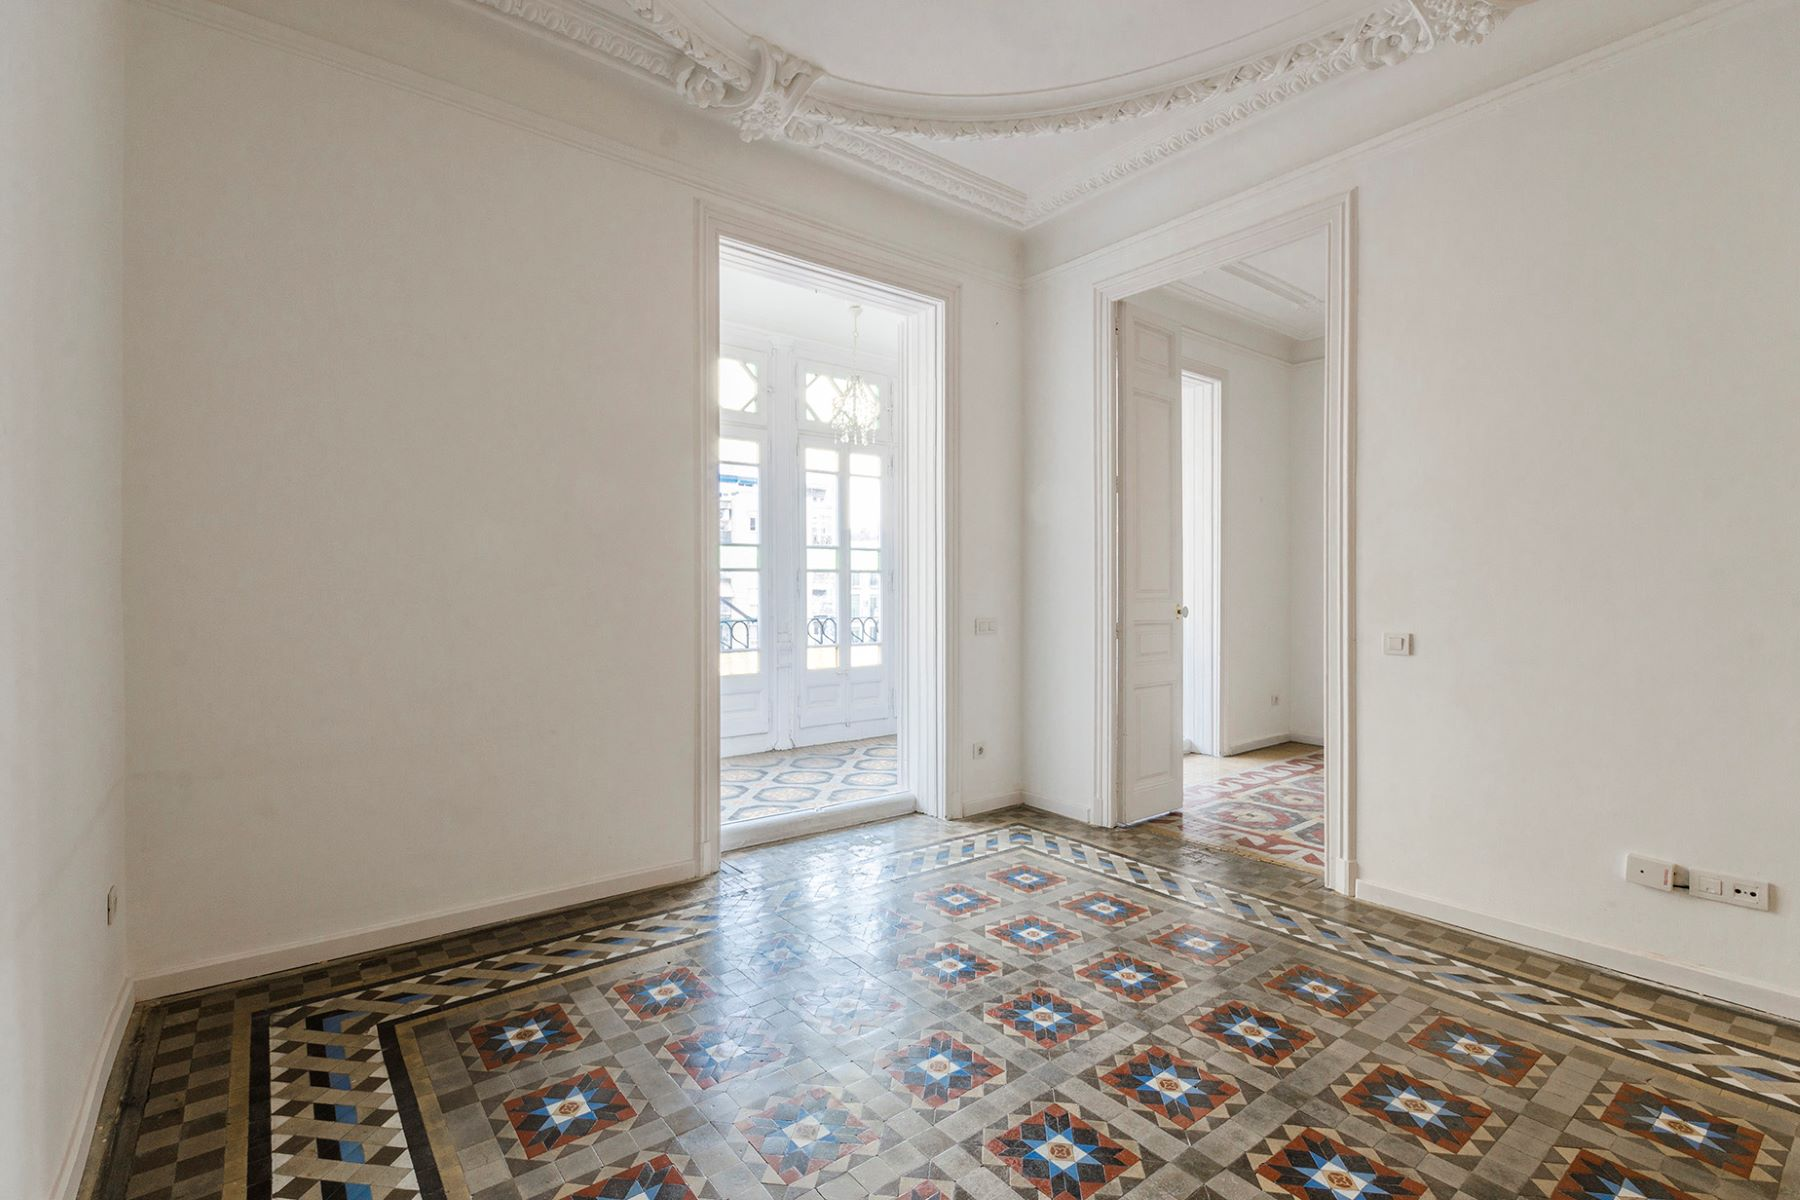 Apartment for Sale at Beautiful modernist apartment in Eixample Barcelona City, Barcelona, 08007 Spain